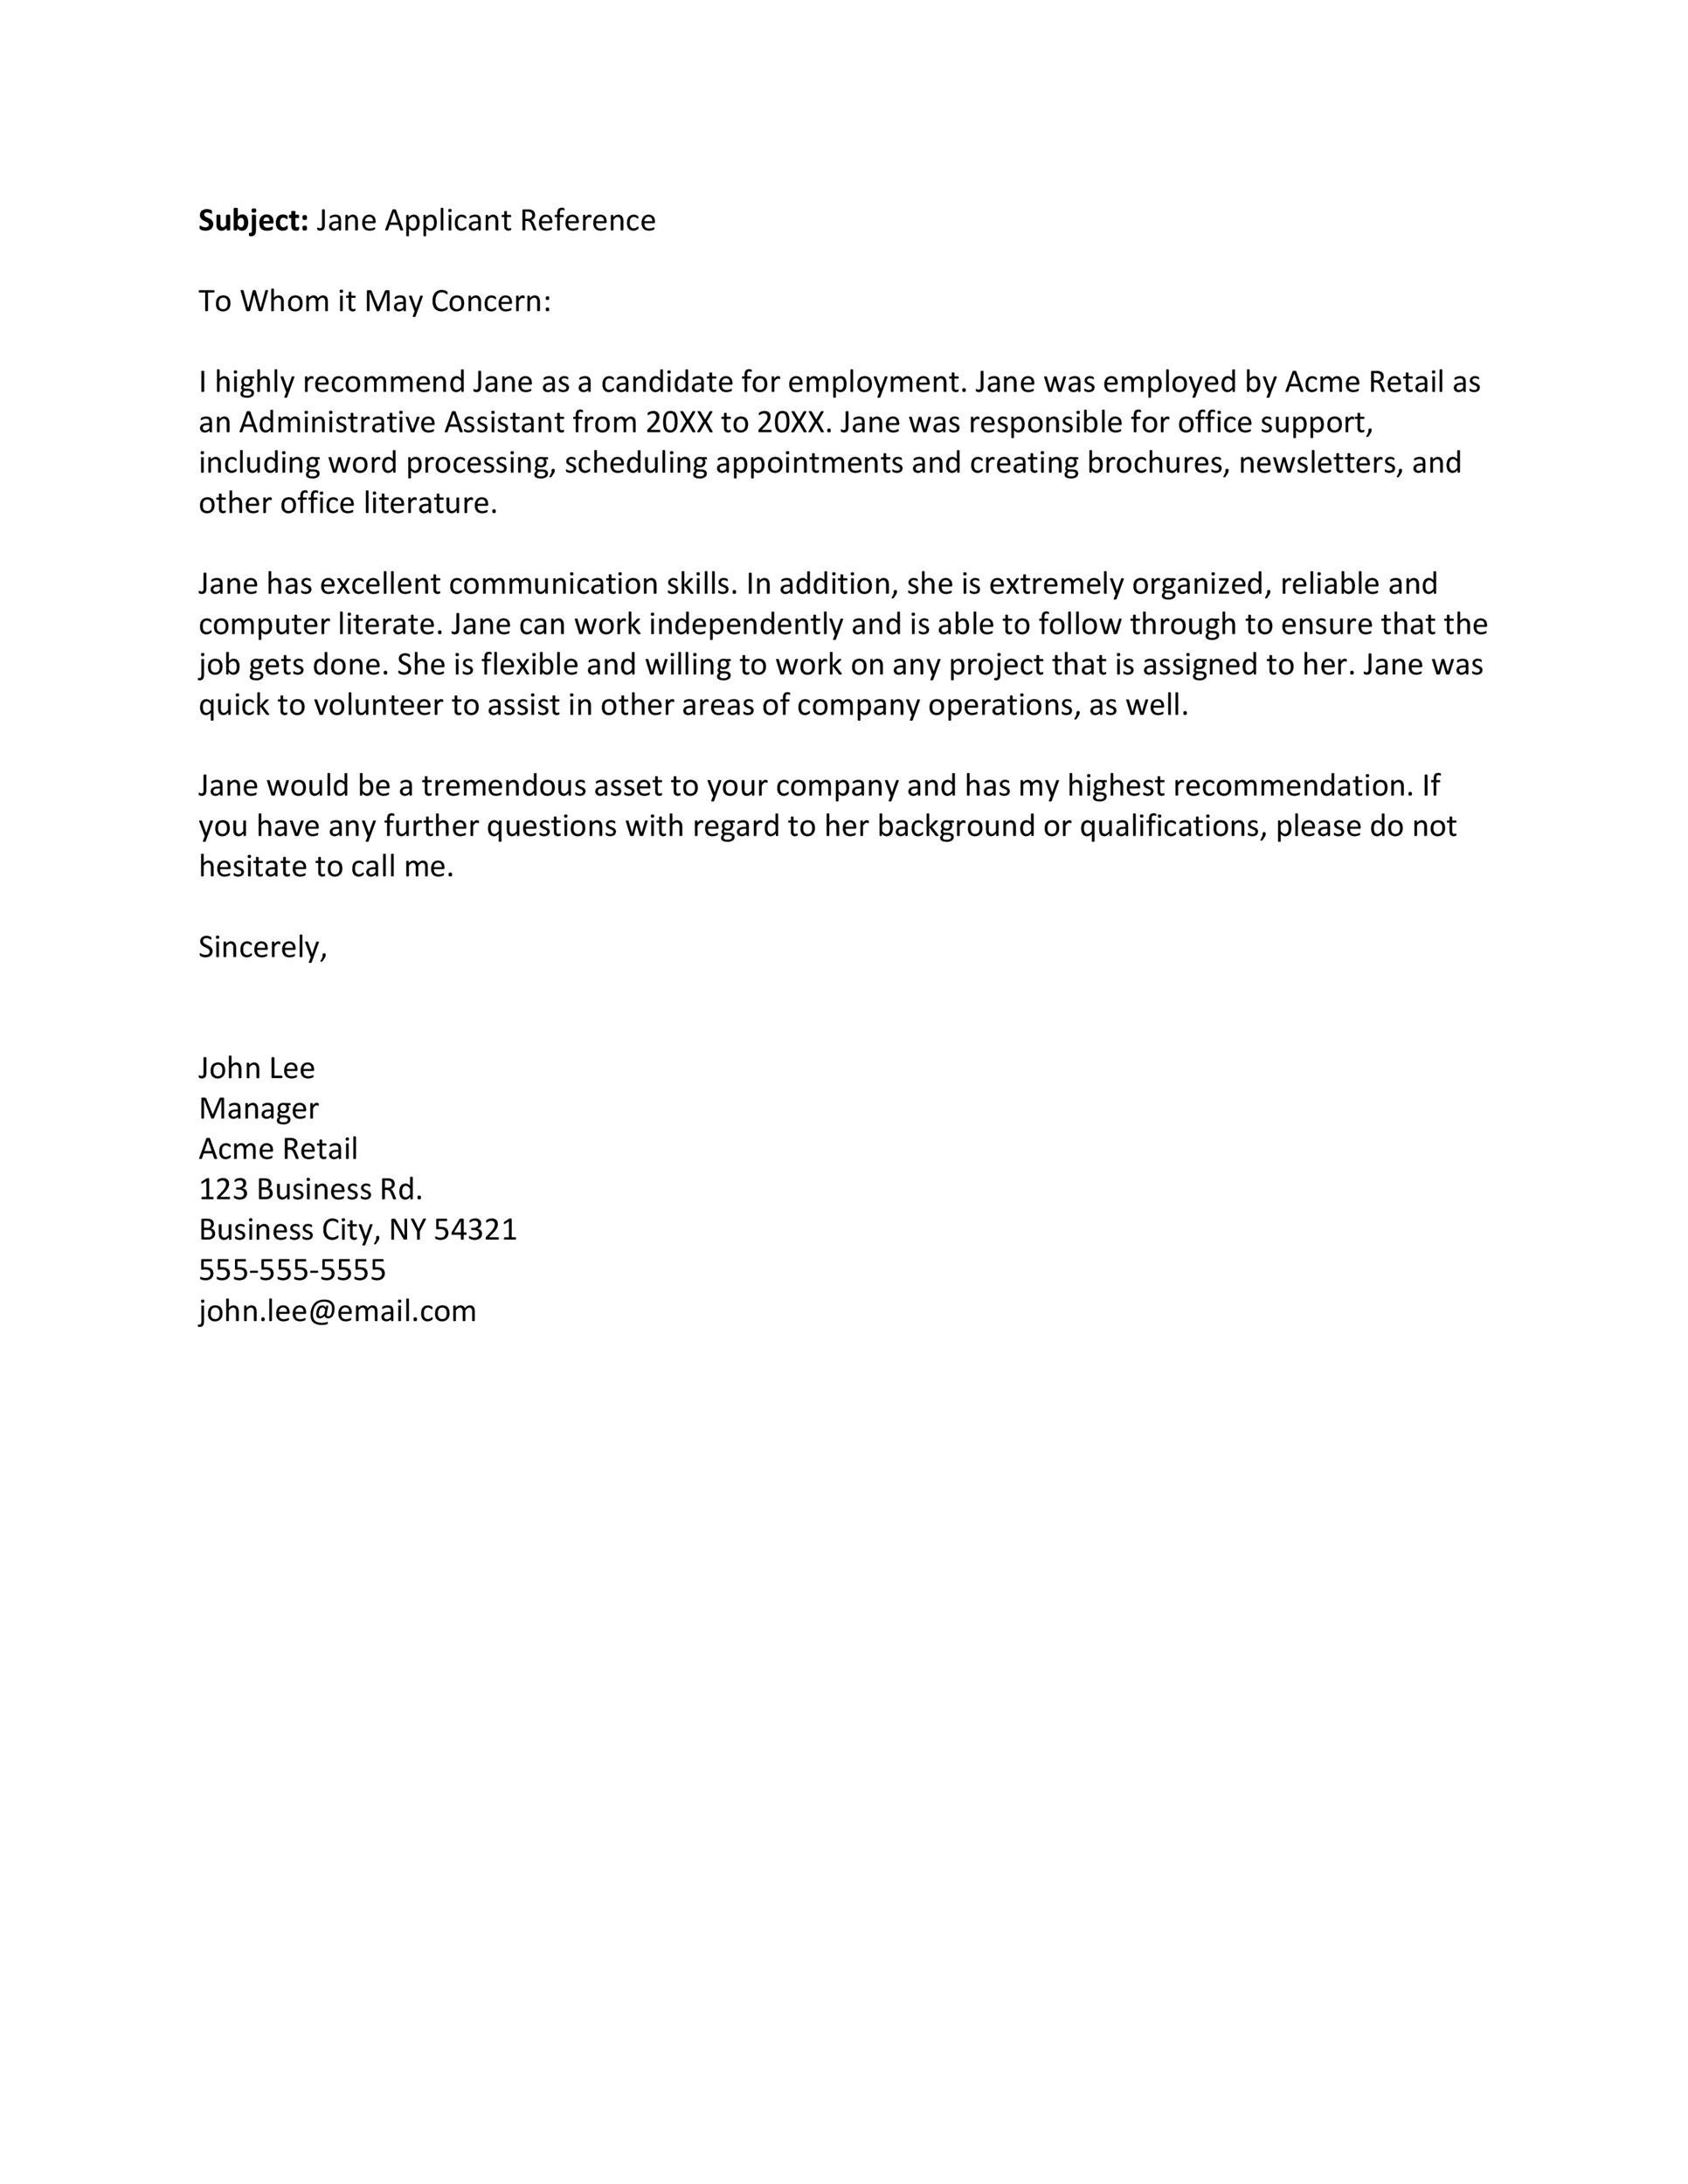 Free Recommendation Letter From Manager Template 46